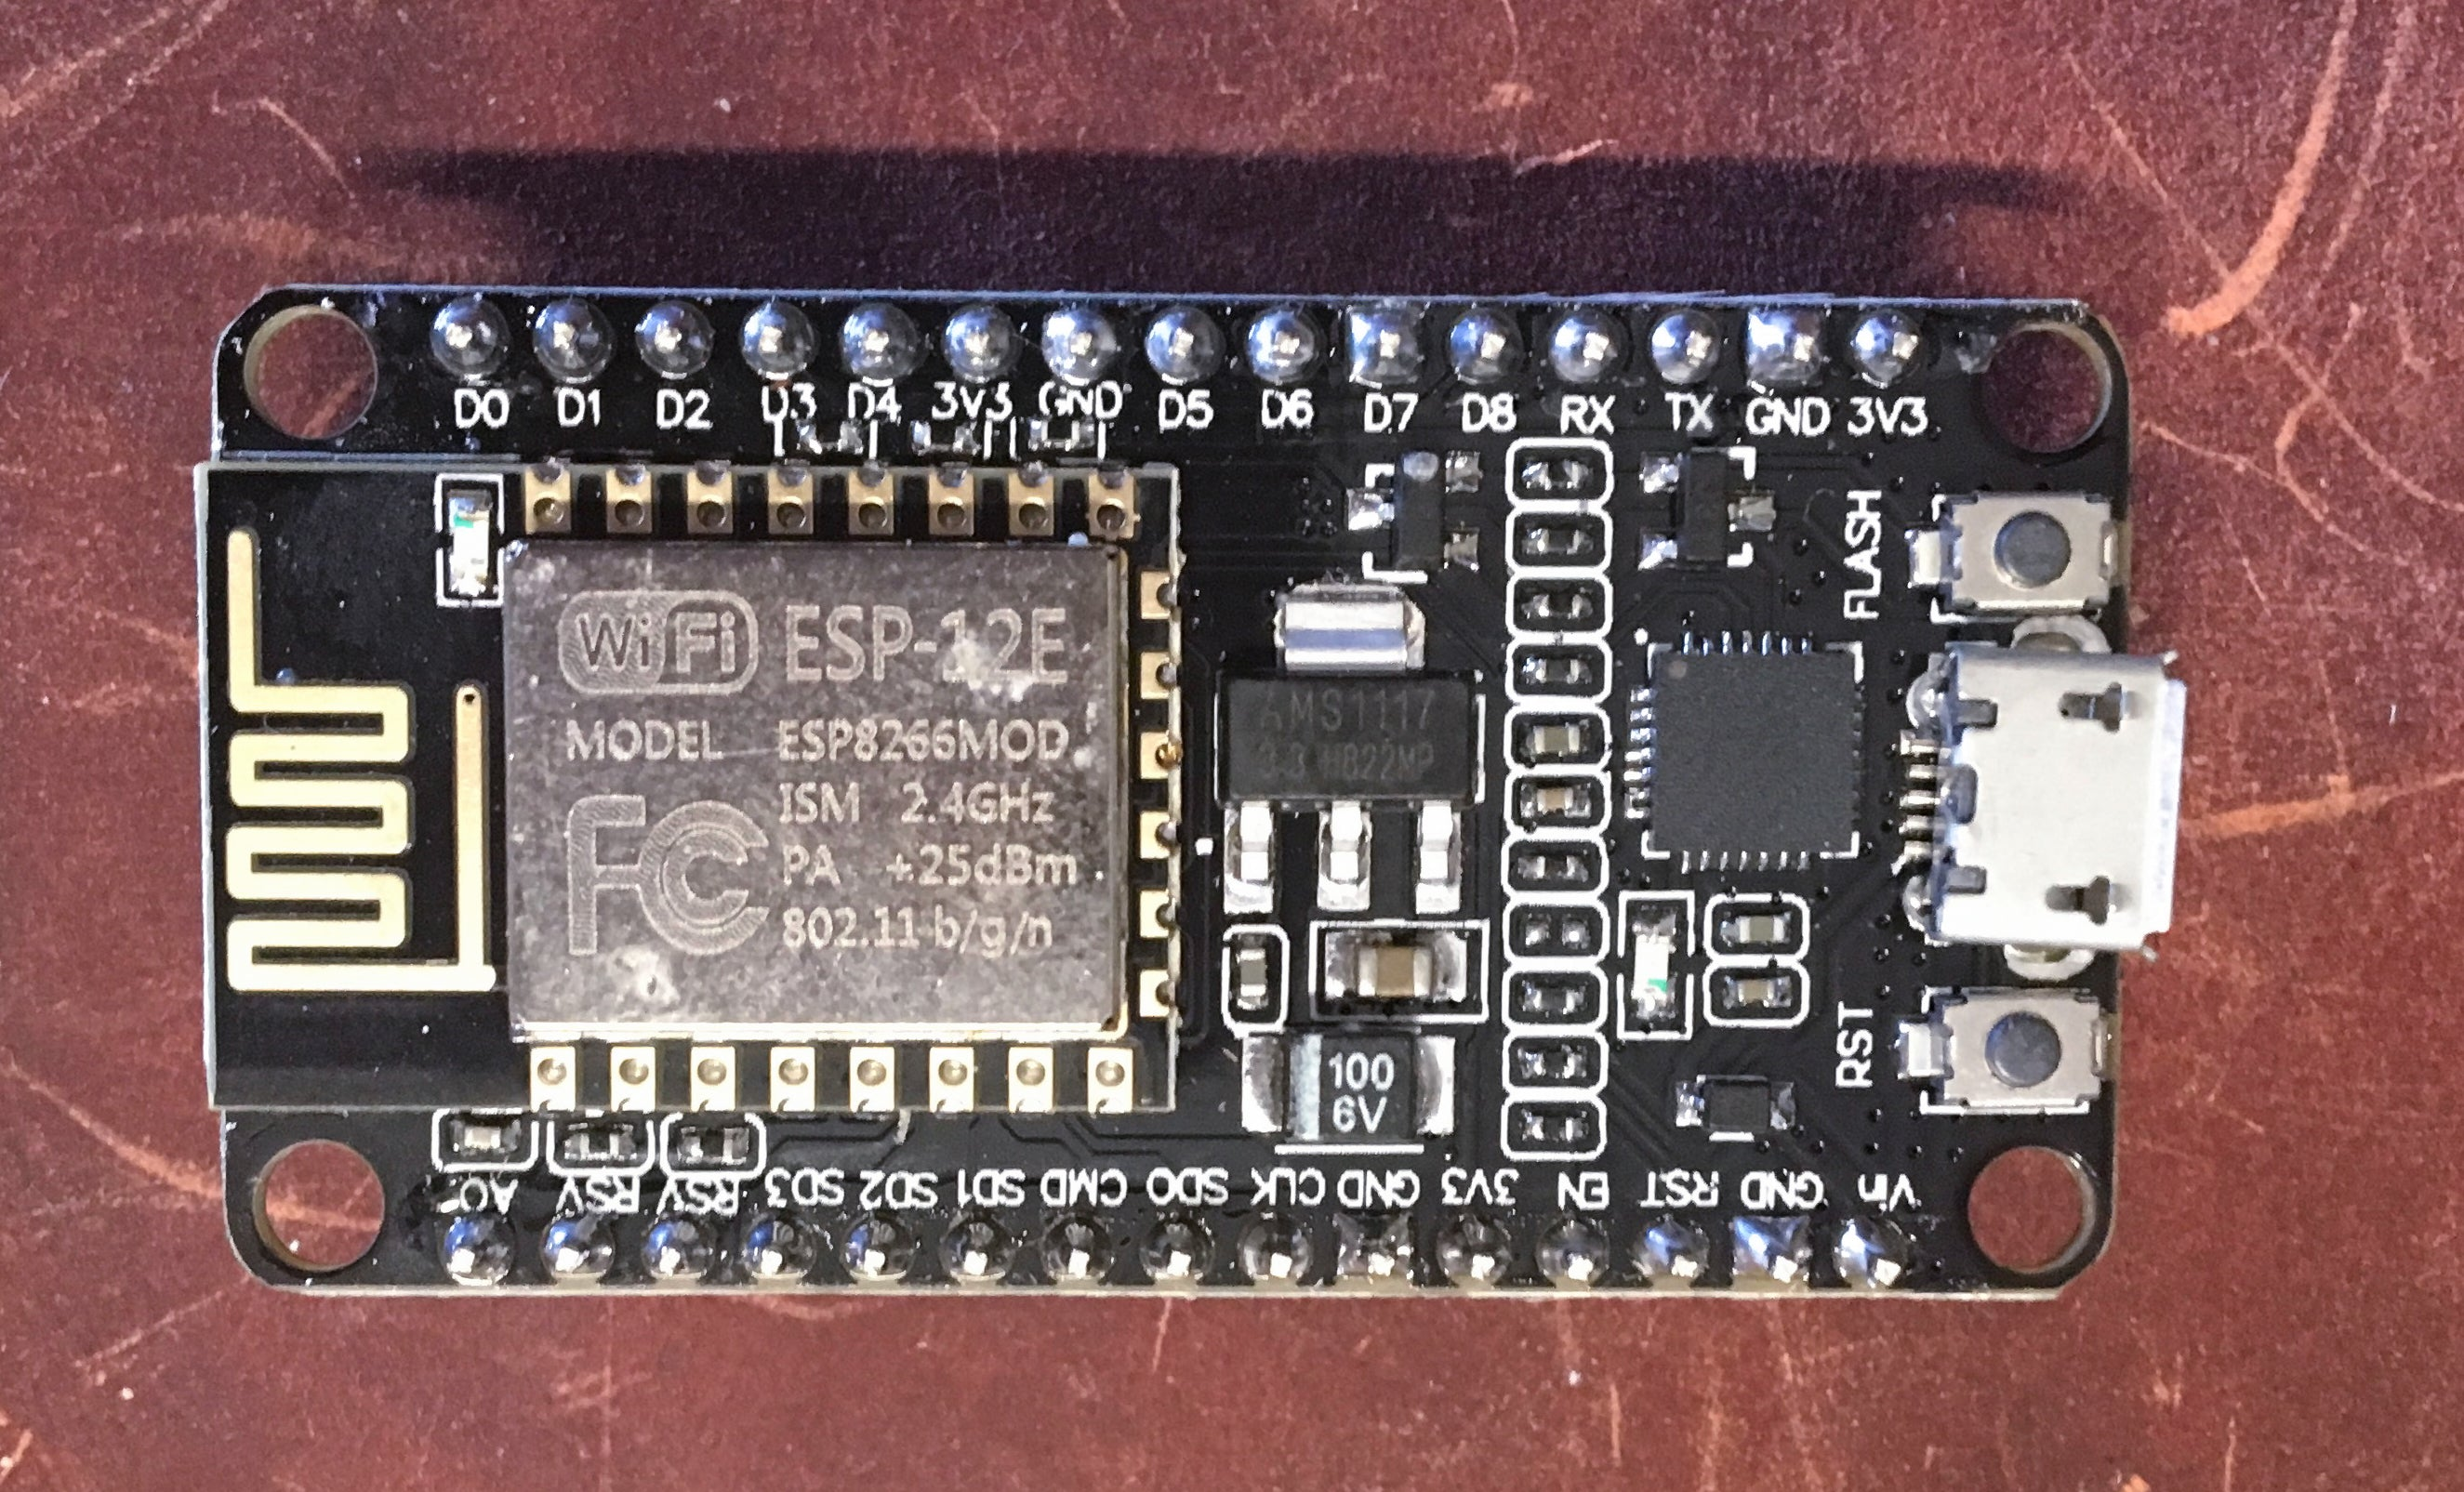 nodeMCU ESP8266 CP2102 V3 Mongoose OS - IoT - AWS, Google IoT, Azure, Watson - Server On The Move